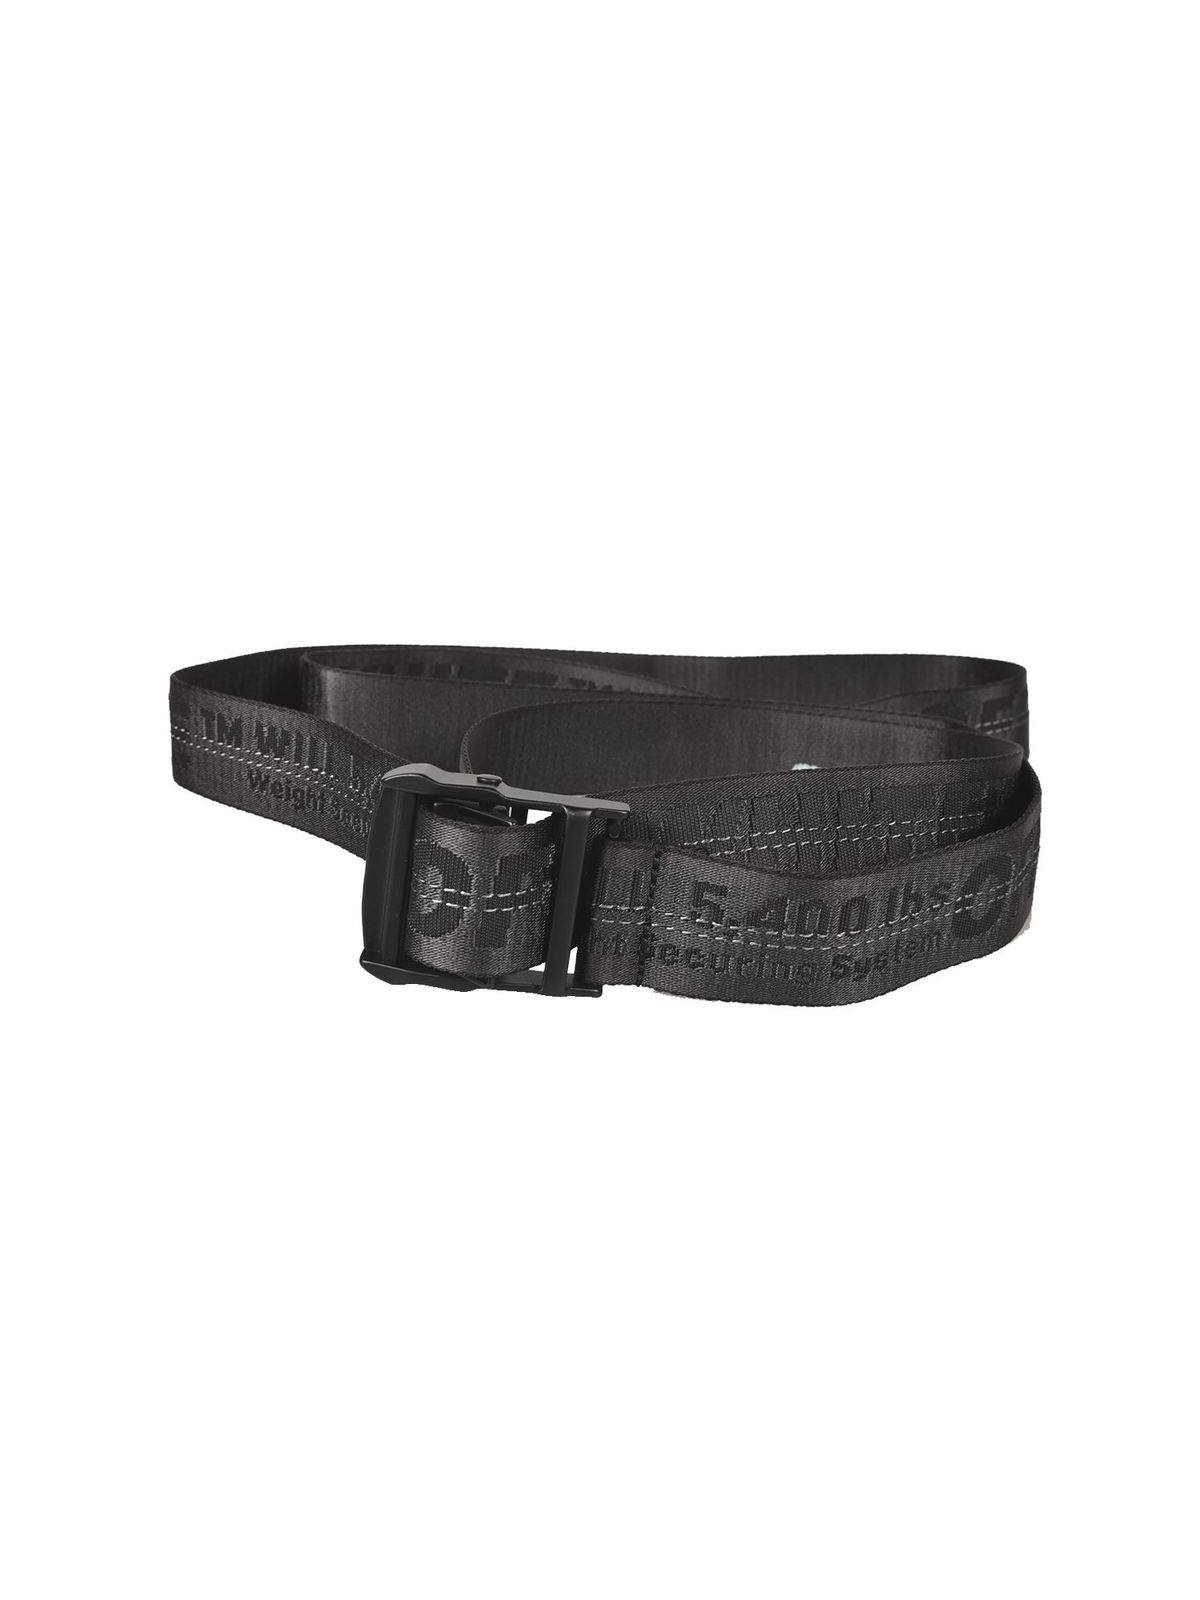 Off-White Belts CLASSIC INDUSTRIAL BELT IN BLACK